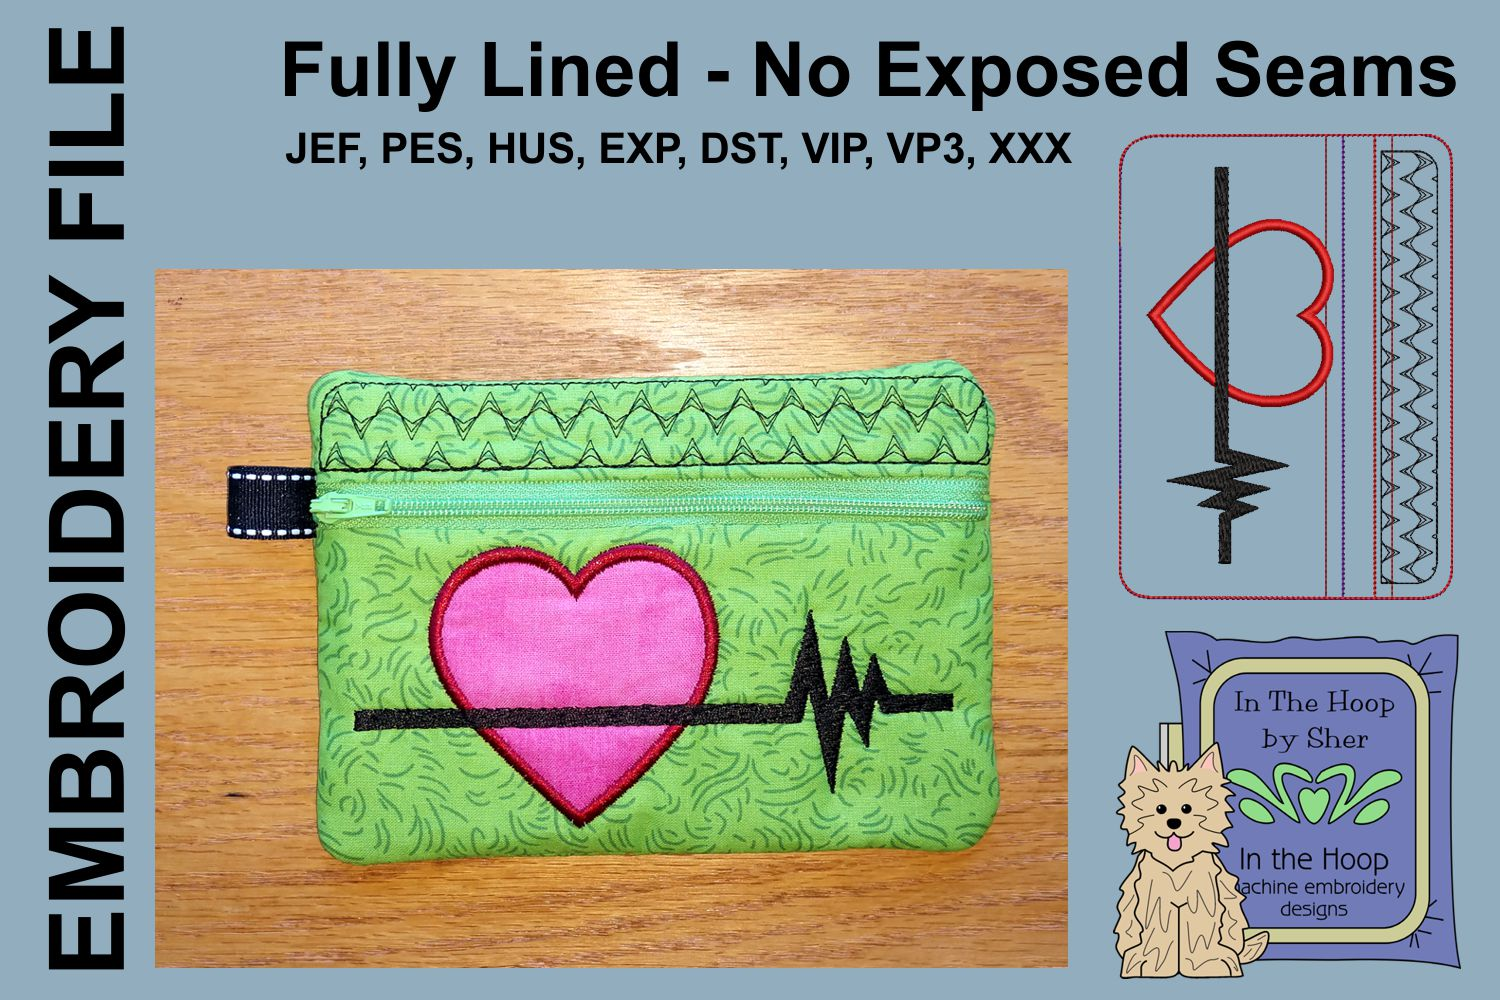 ITH Heart Healthy Zipper Bag - Fully Lined, 5X7 HOOP example image 1